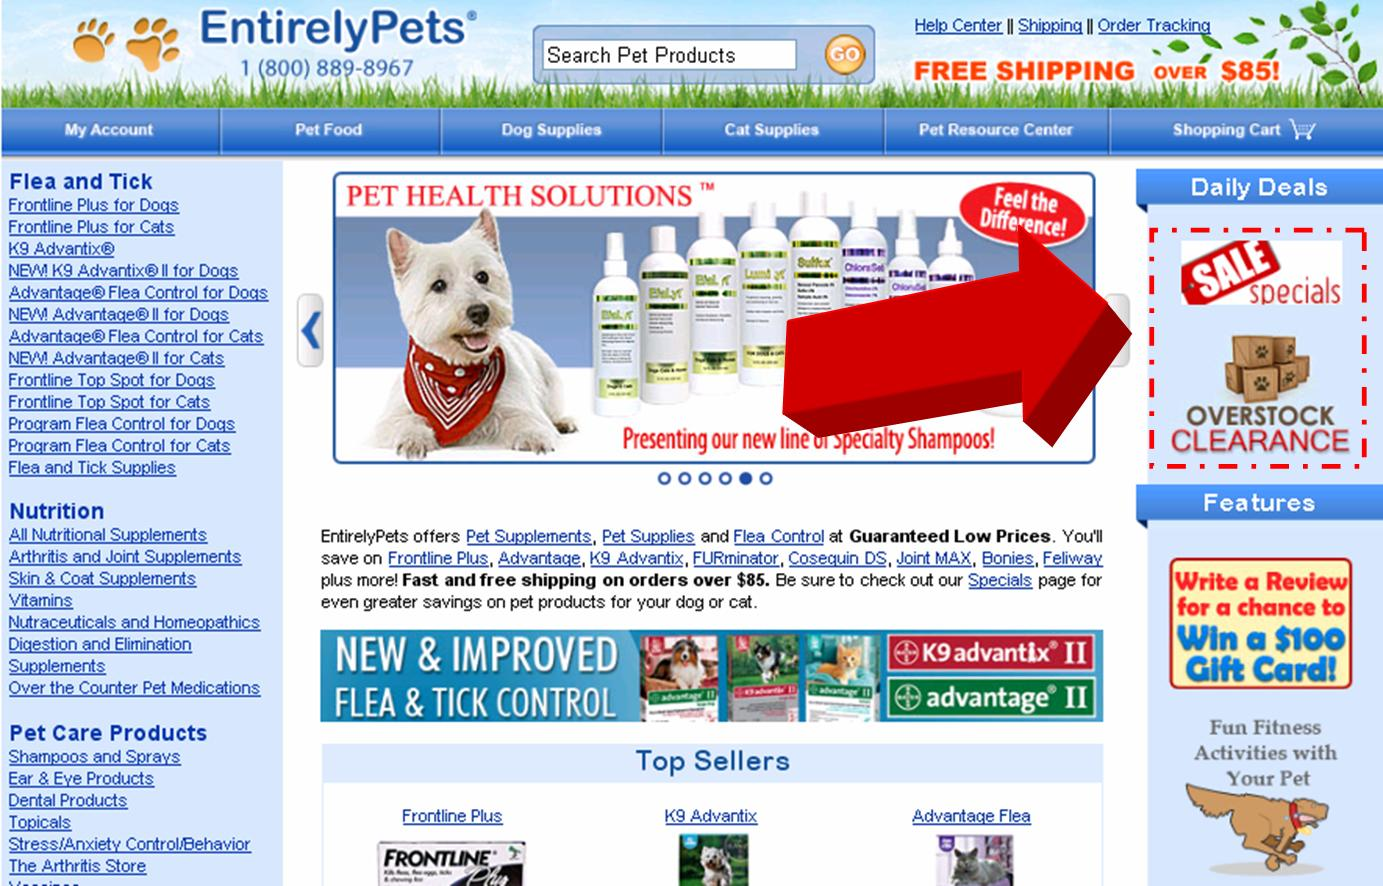 Entirely Pets is a beloved provider of all things pet, including a fun collection of toys, treats, supplements and health supplies. Whether you are shopping for dogs or cats, follow this link to take advantage of $5 savings on all orders of $